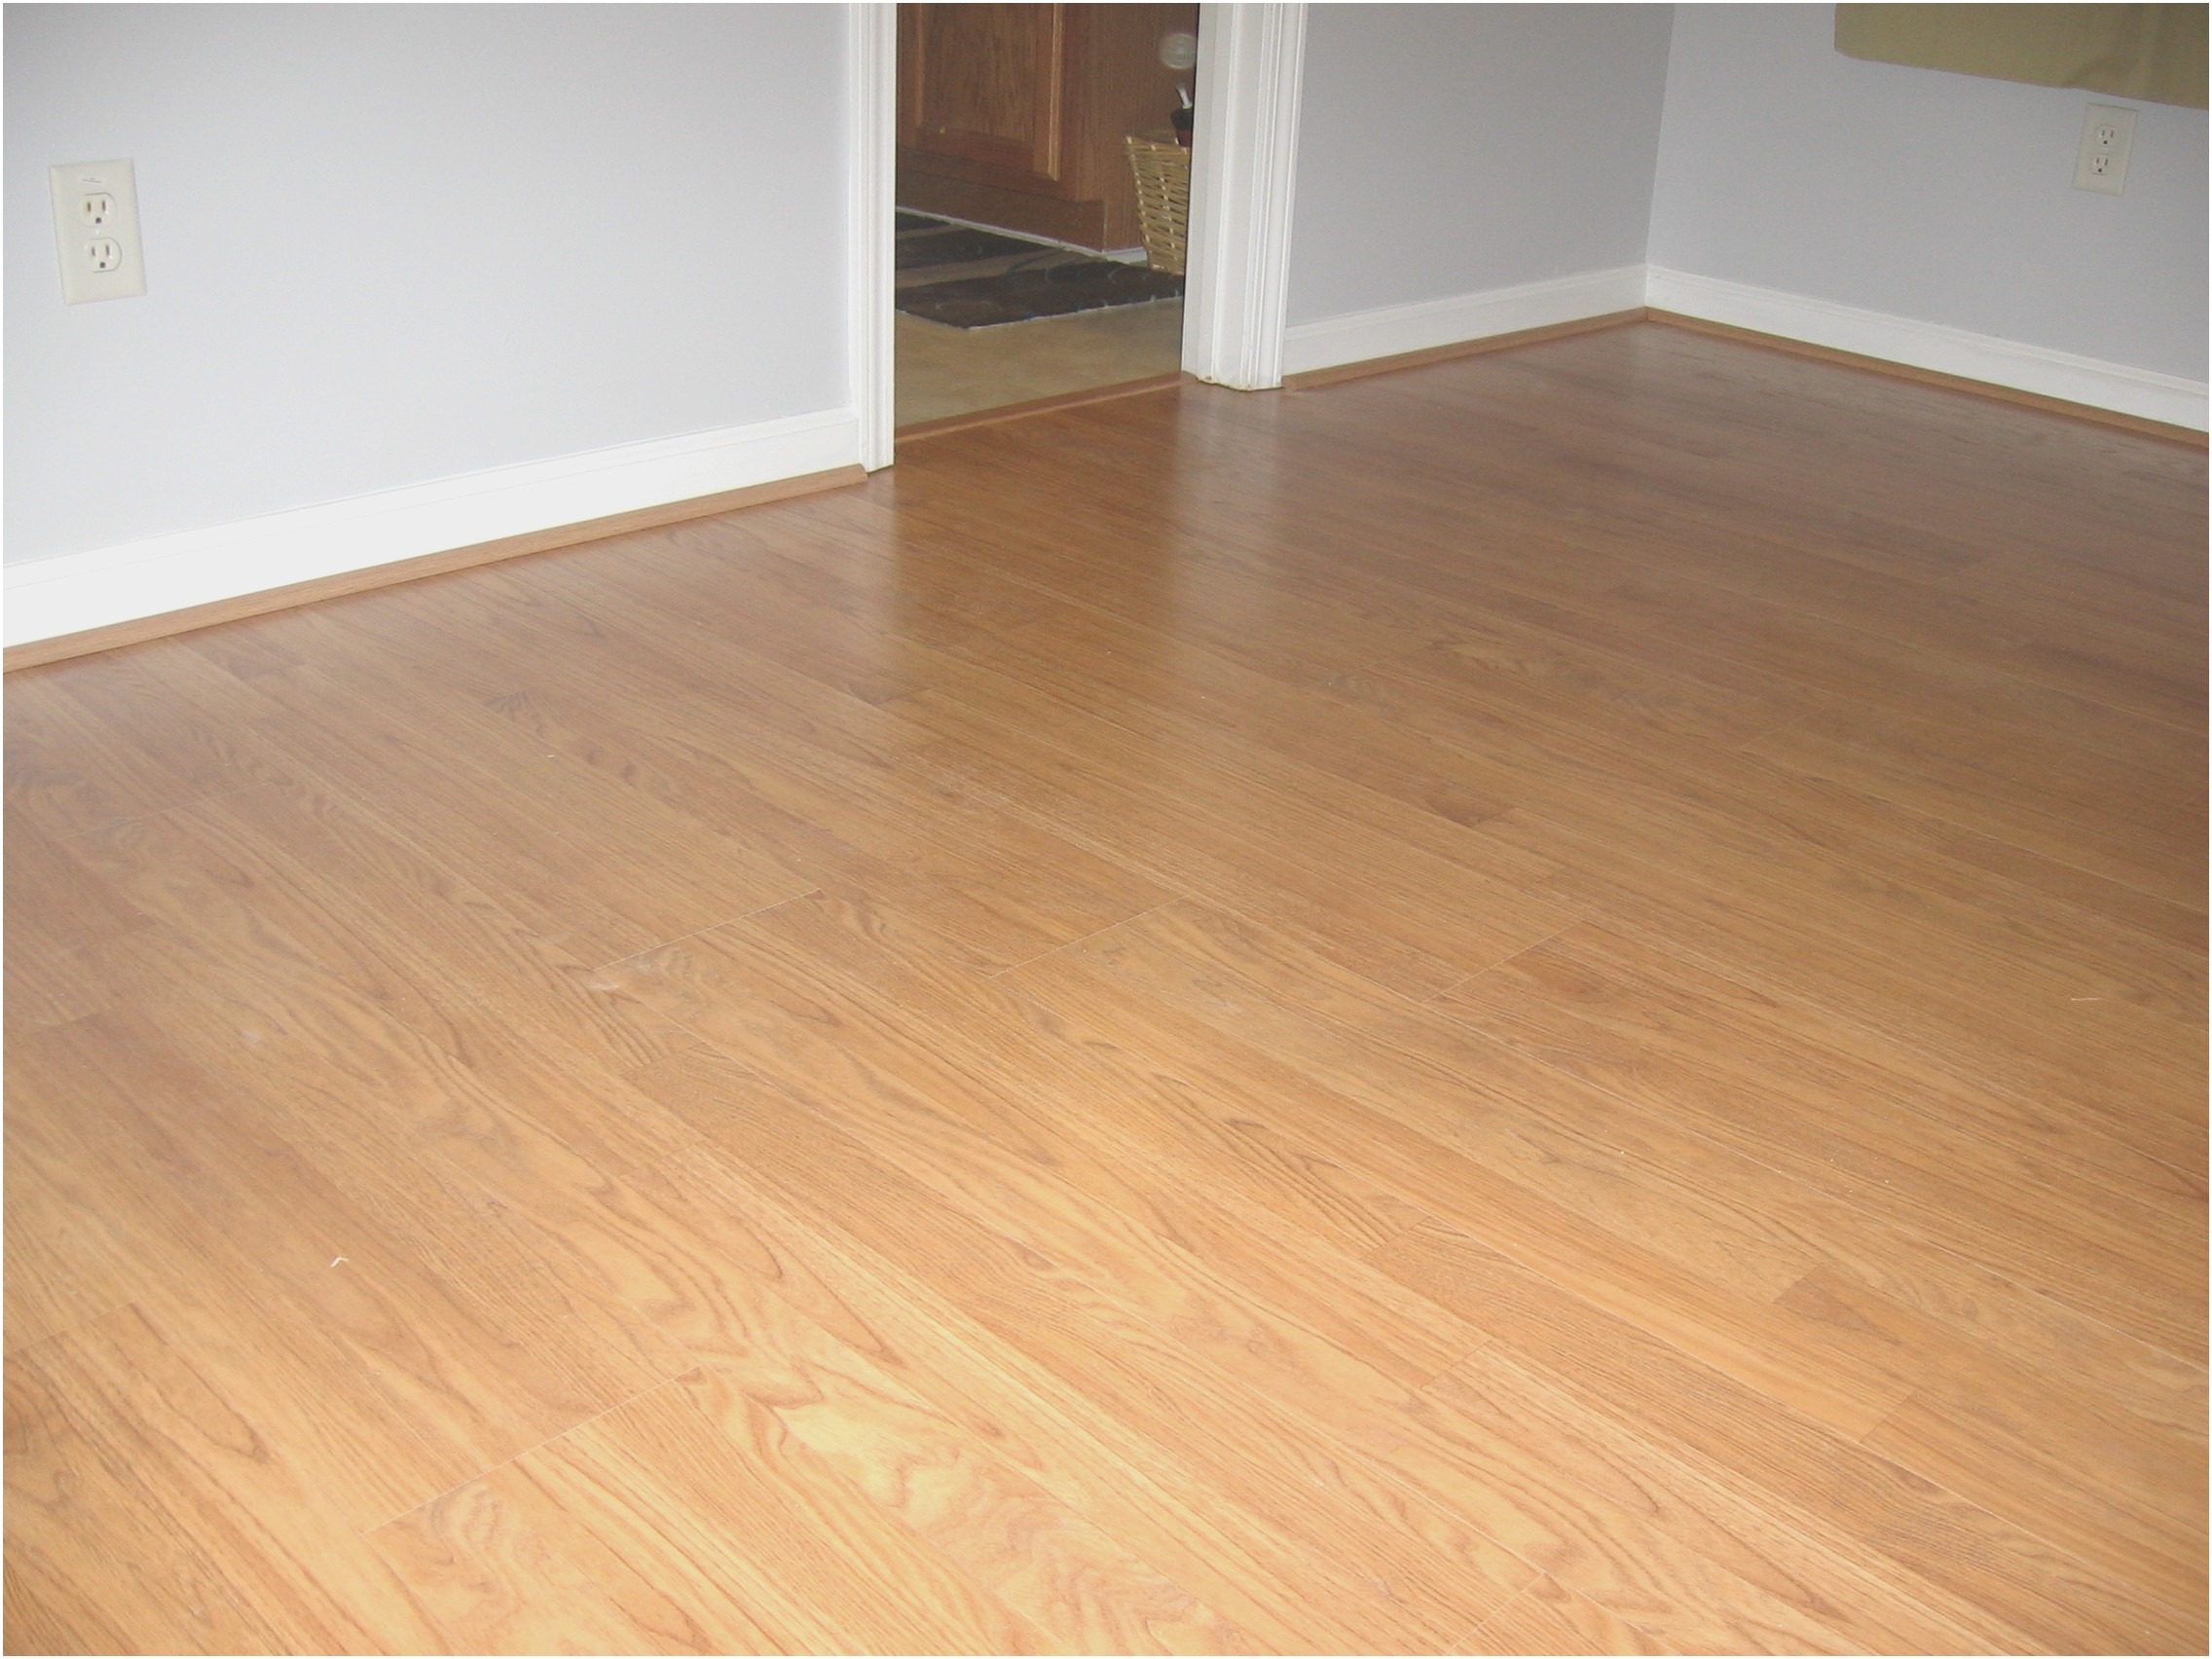 How to care for mohawk laminate flooring floors doors for Mohawk hardwood flooring